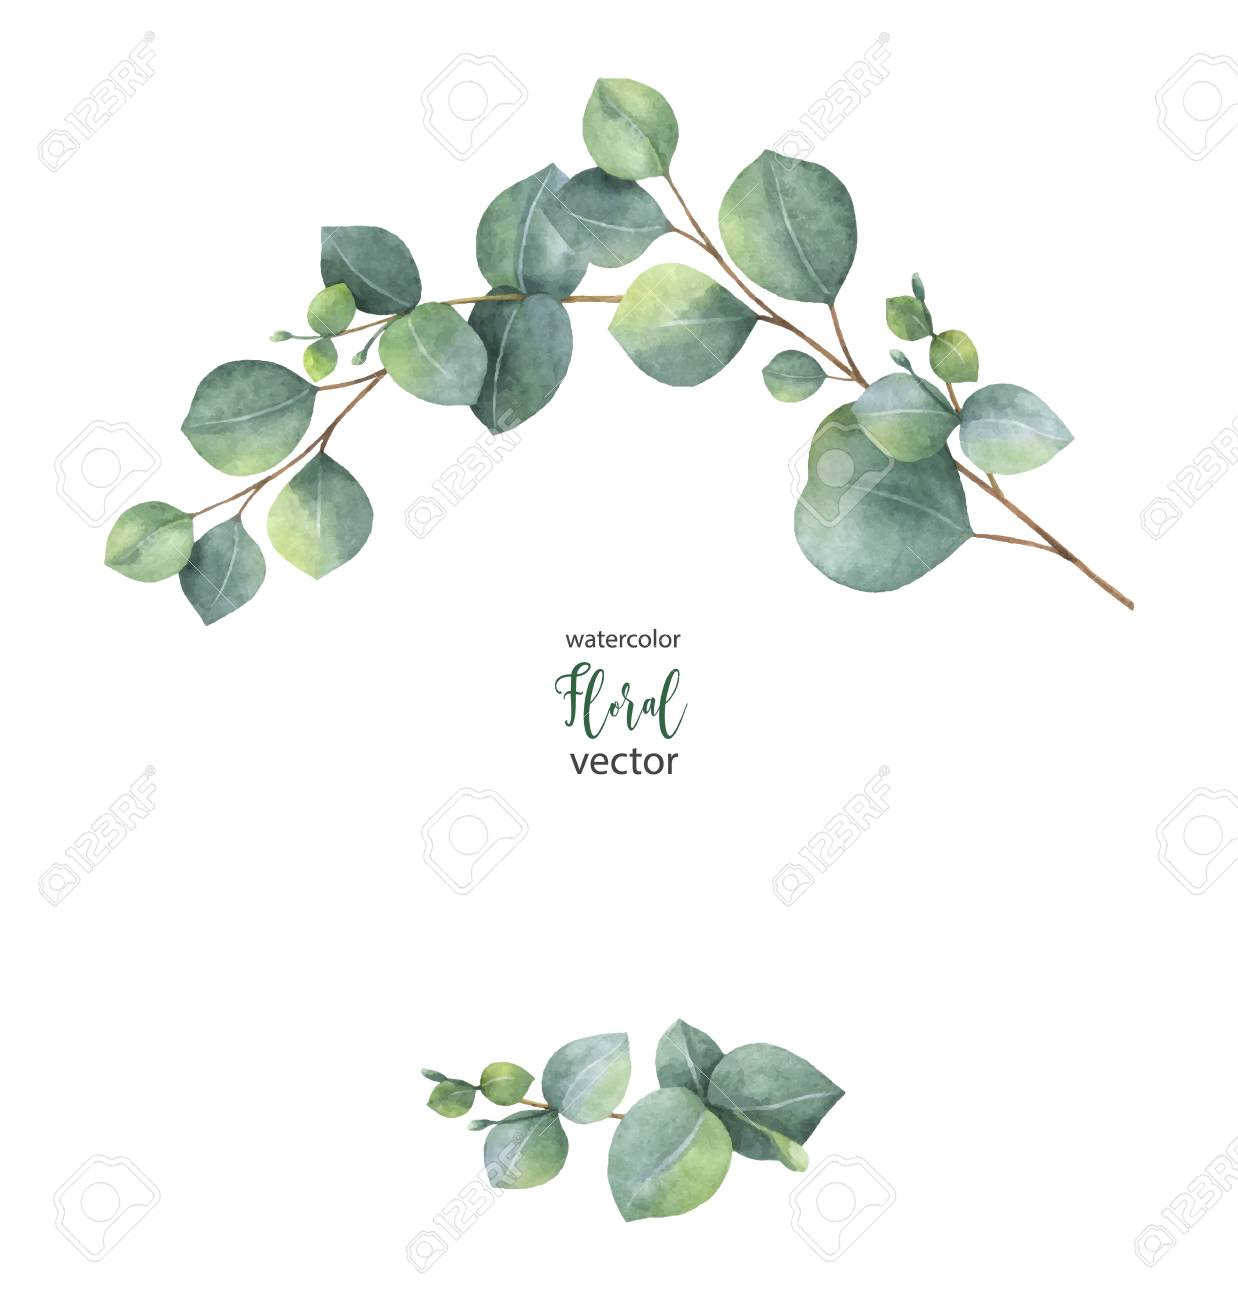 Watercolor vector wreath with green eucalyptus leaves and branches. - 91103500